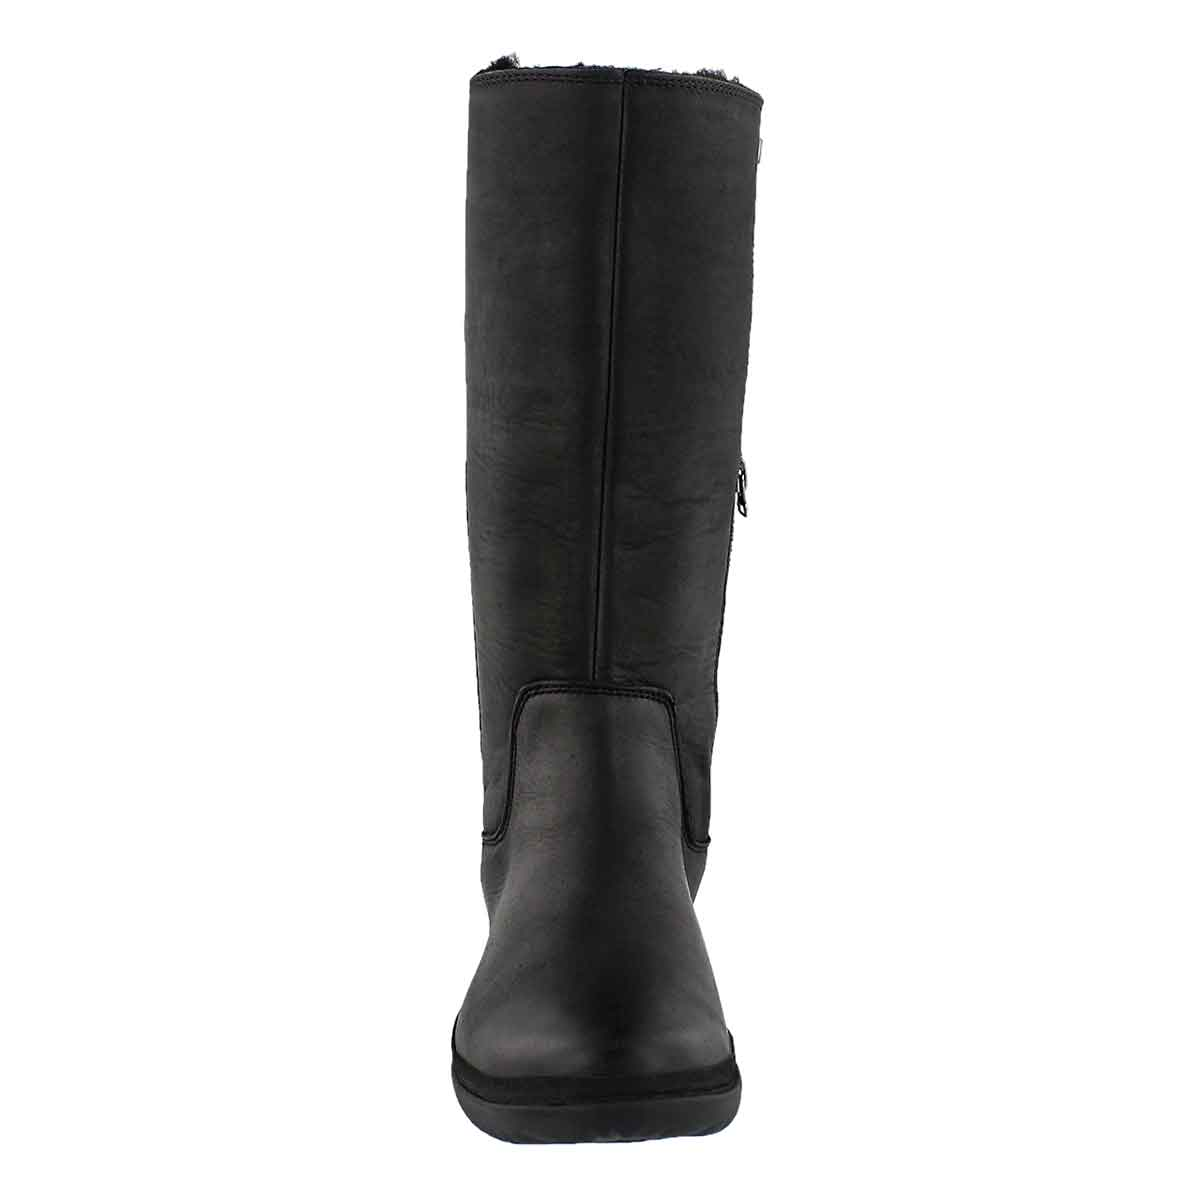 Lds Janina black wtpf knee high boot